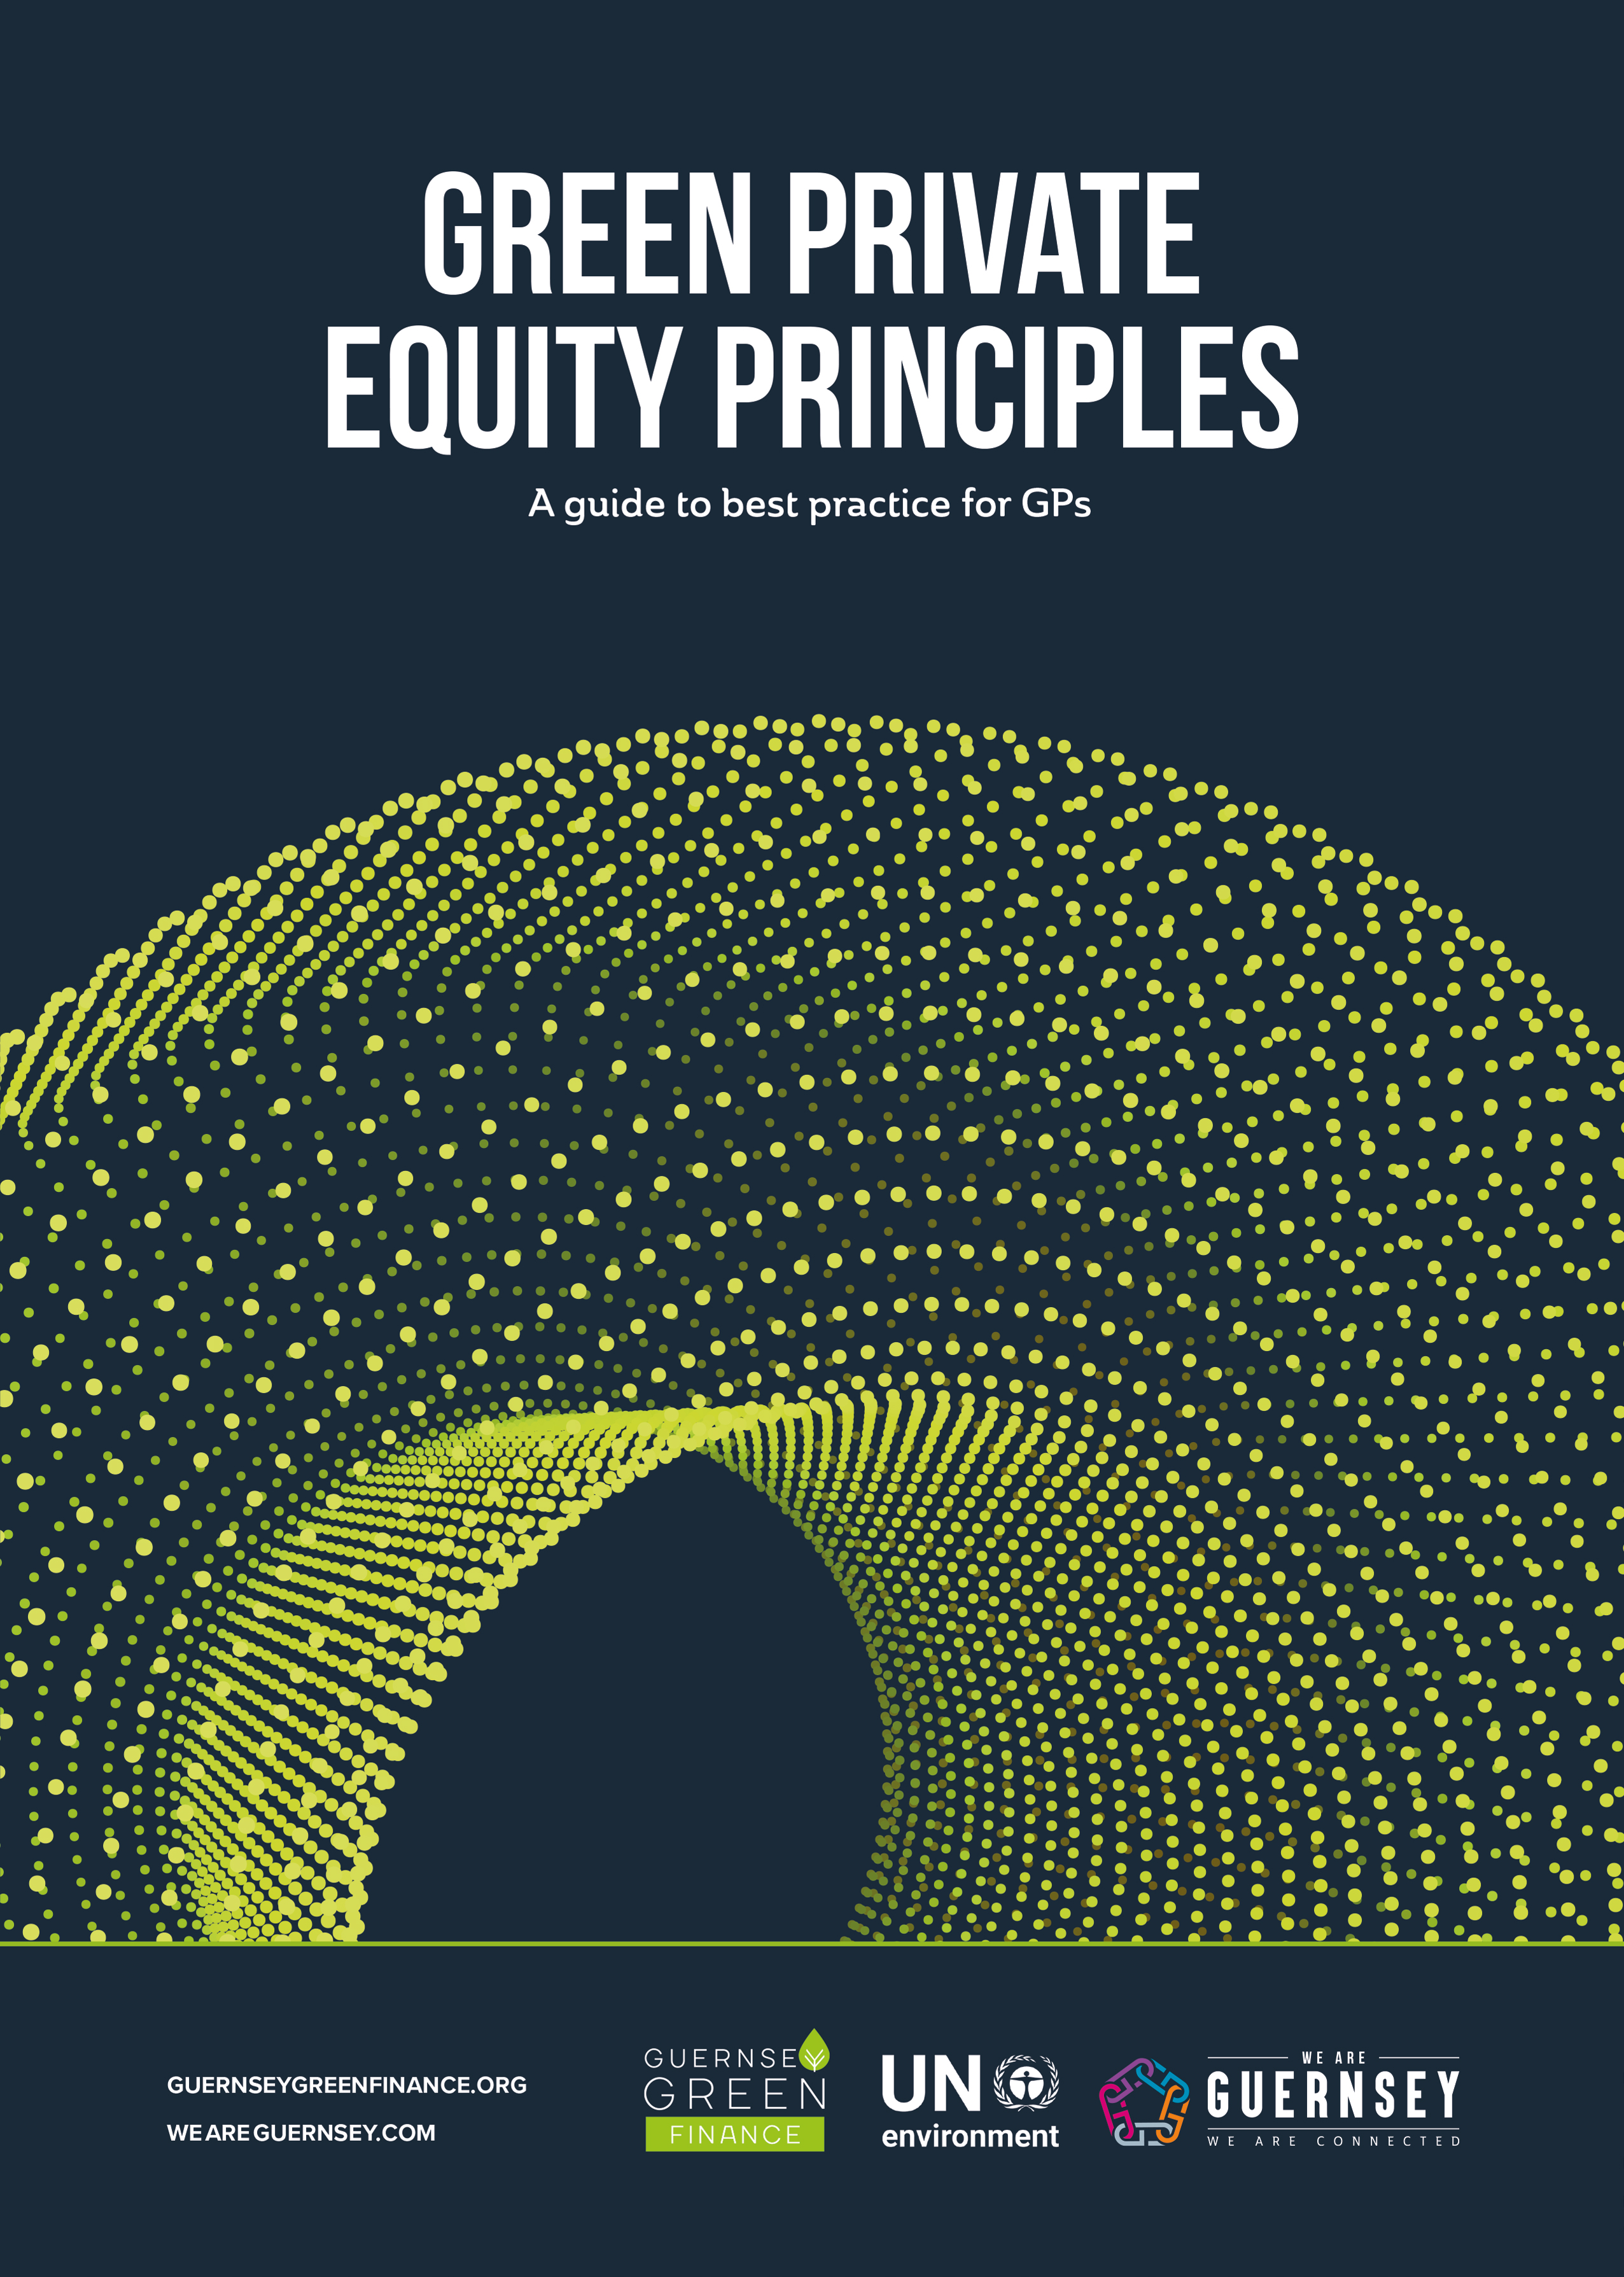 Green Private Equity Principles